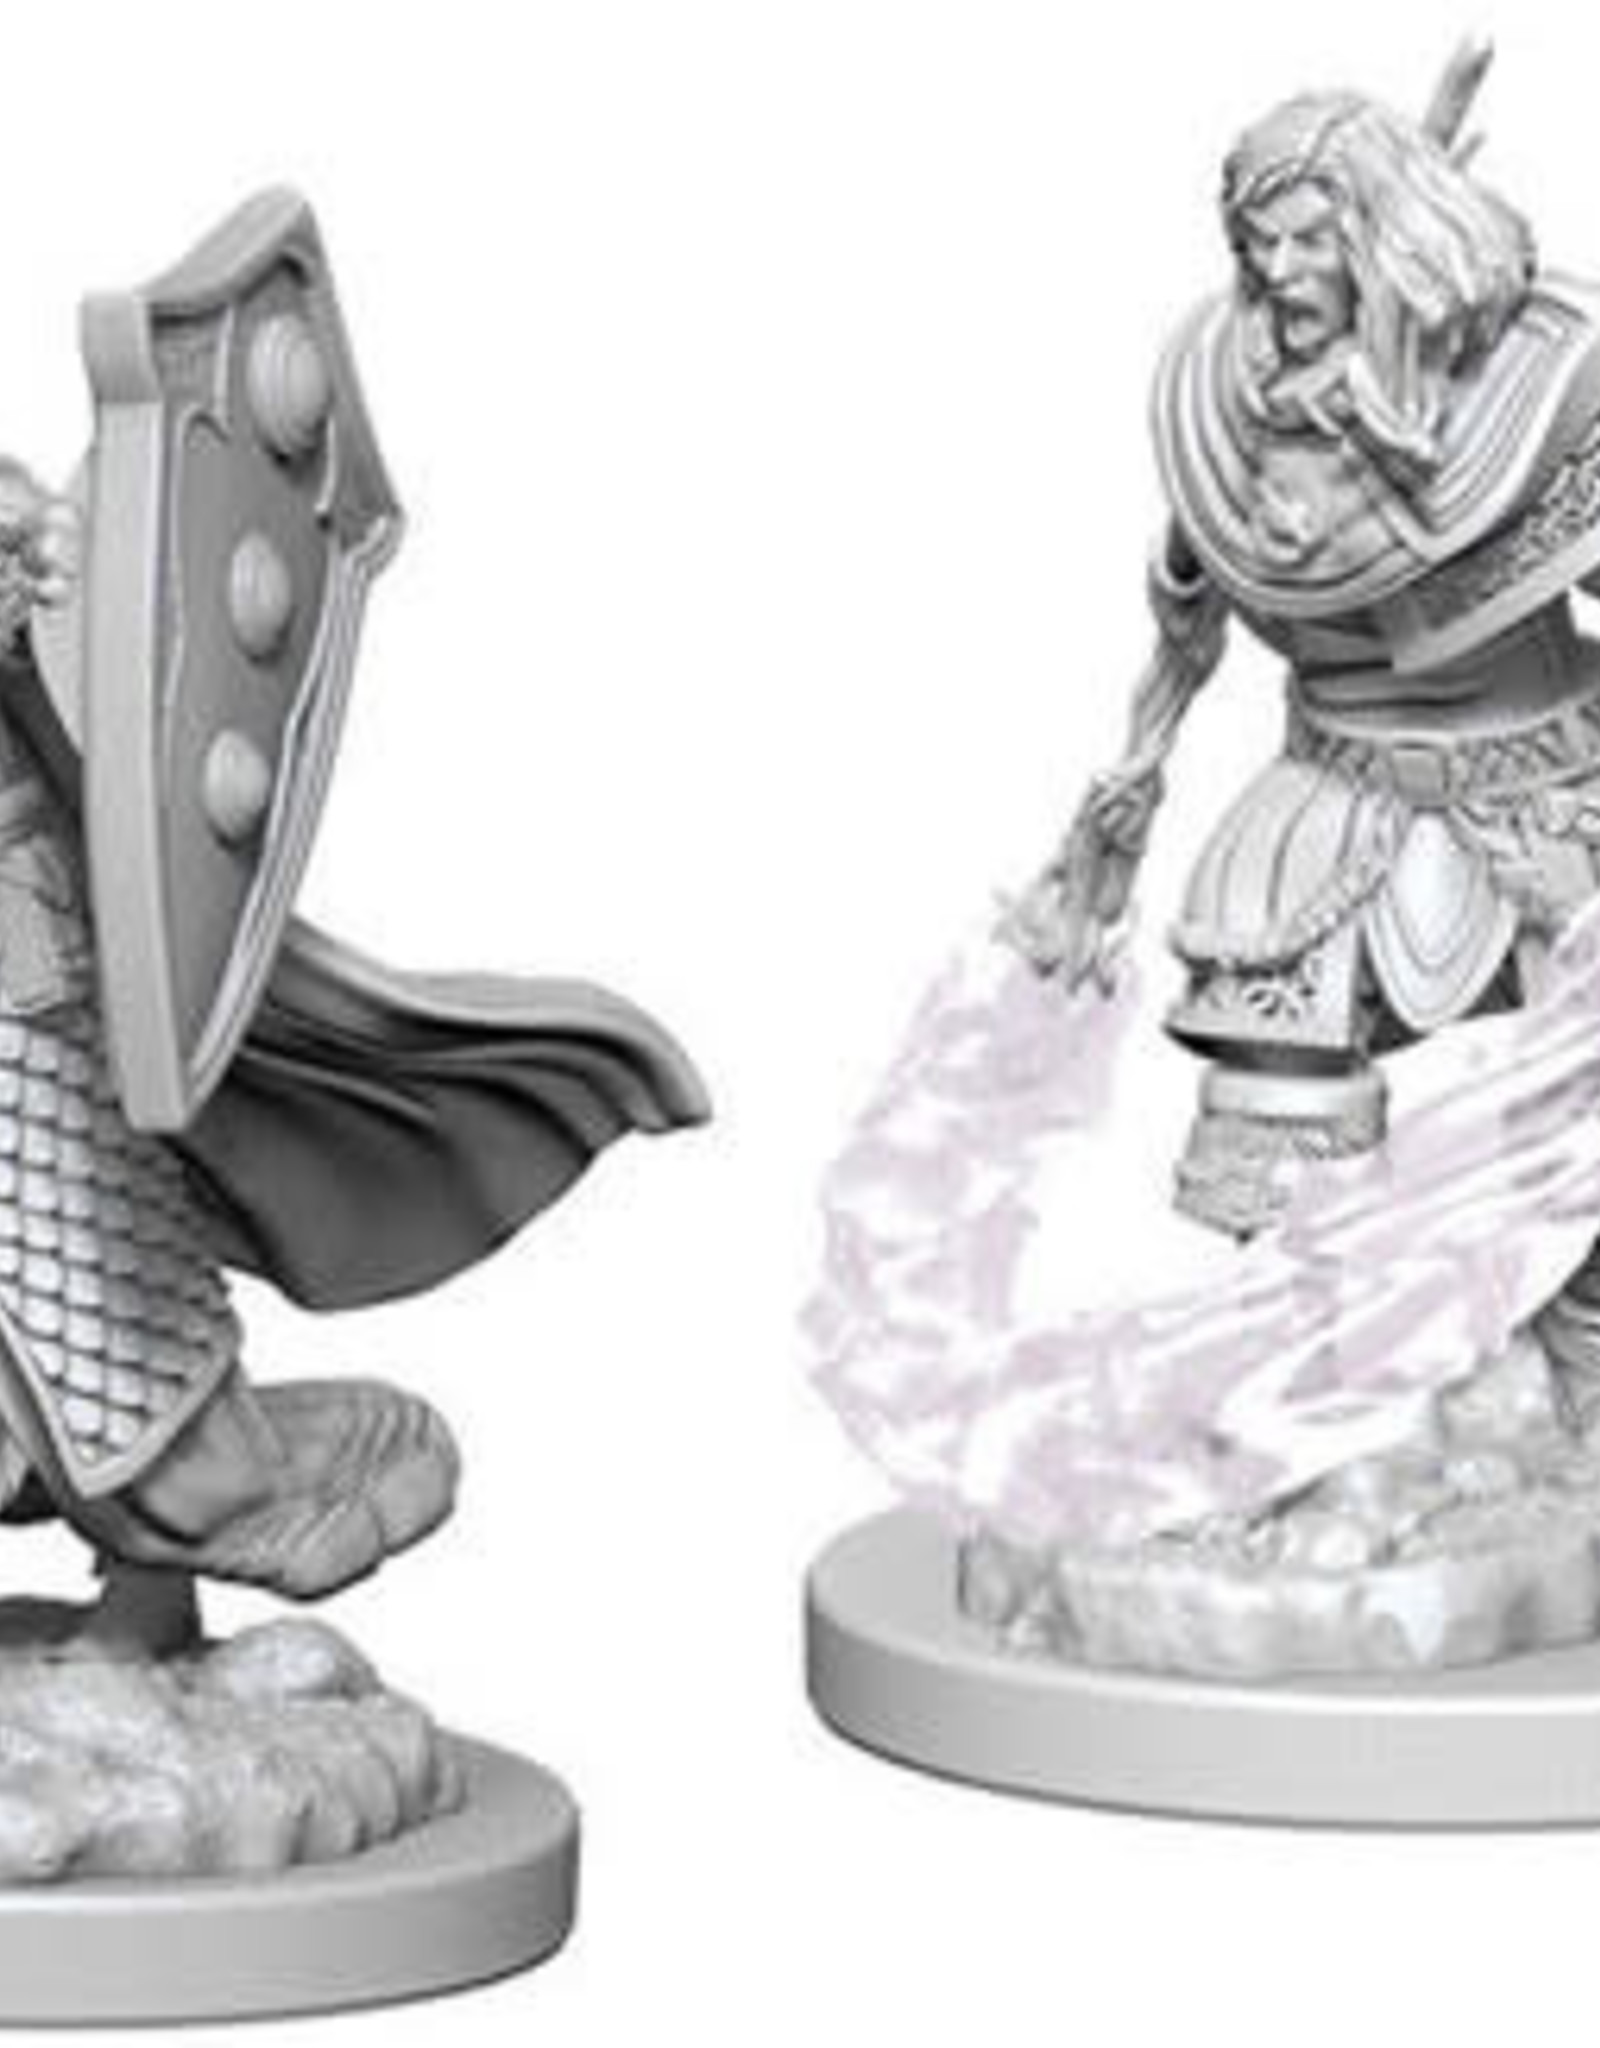 WizKids D&D Nolzur Elf Cleric  (He/Him/They/Them)